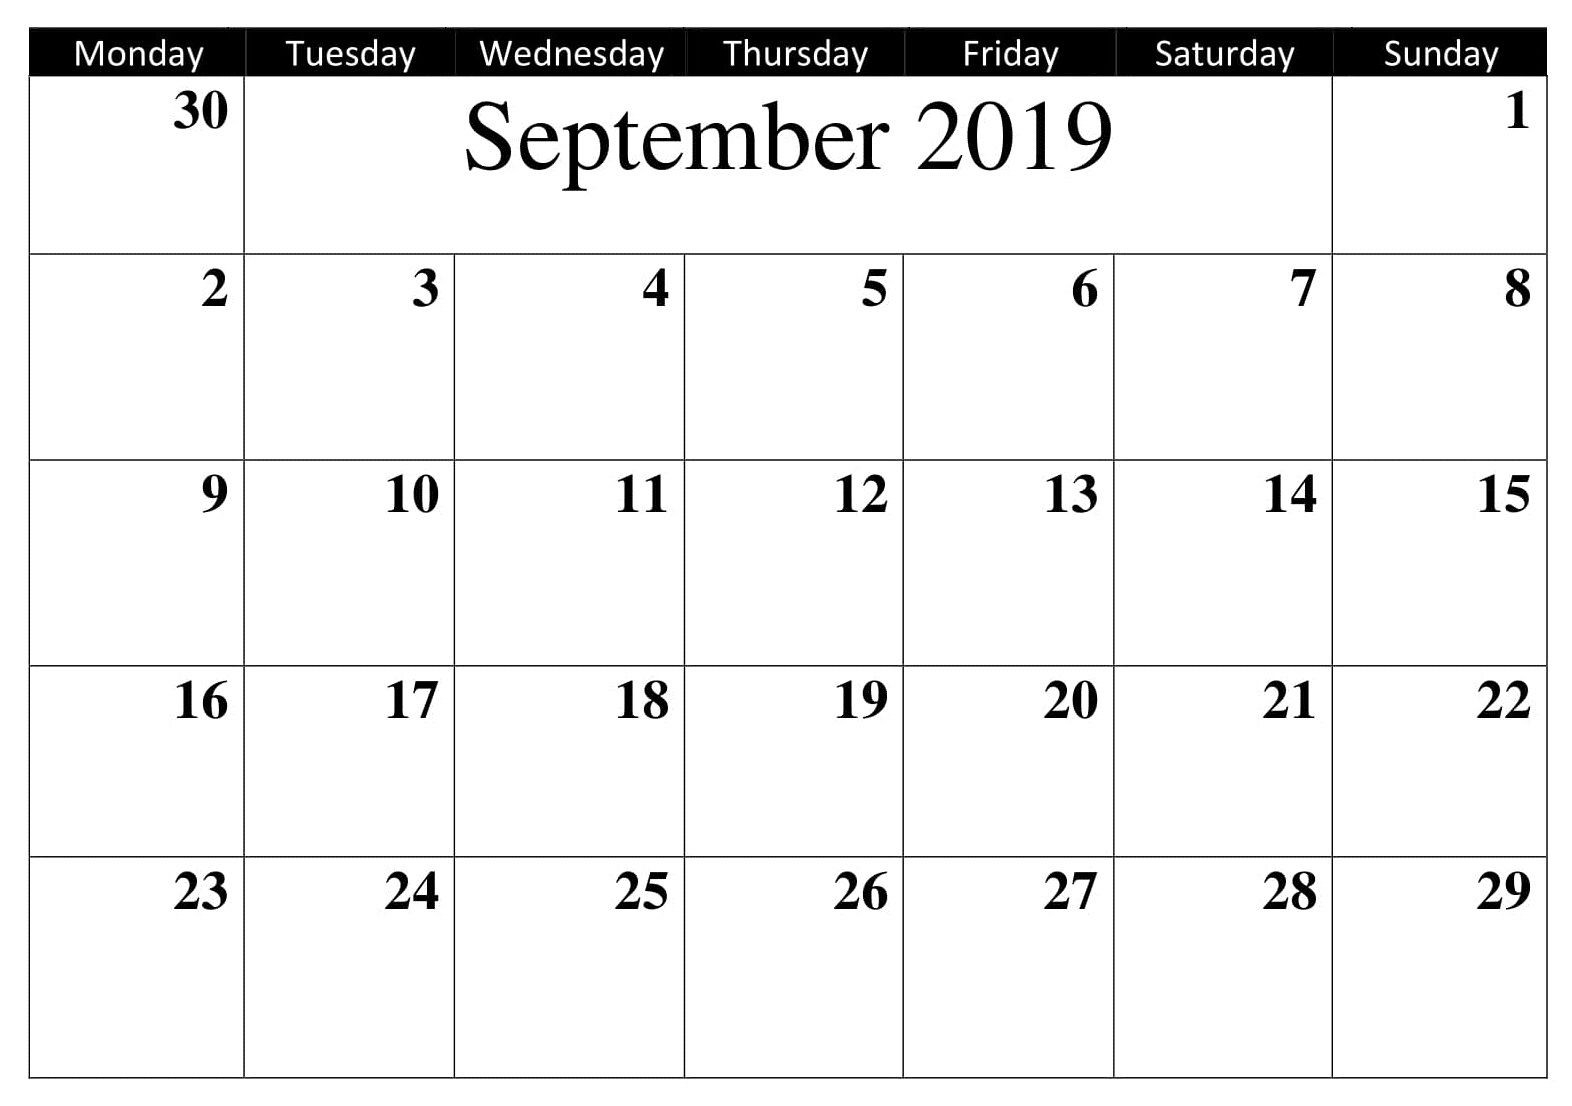 Printable Calendar September 2019 Word | September Calendar-January 2020 Calendar Waterproof